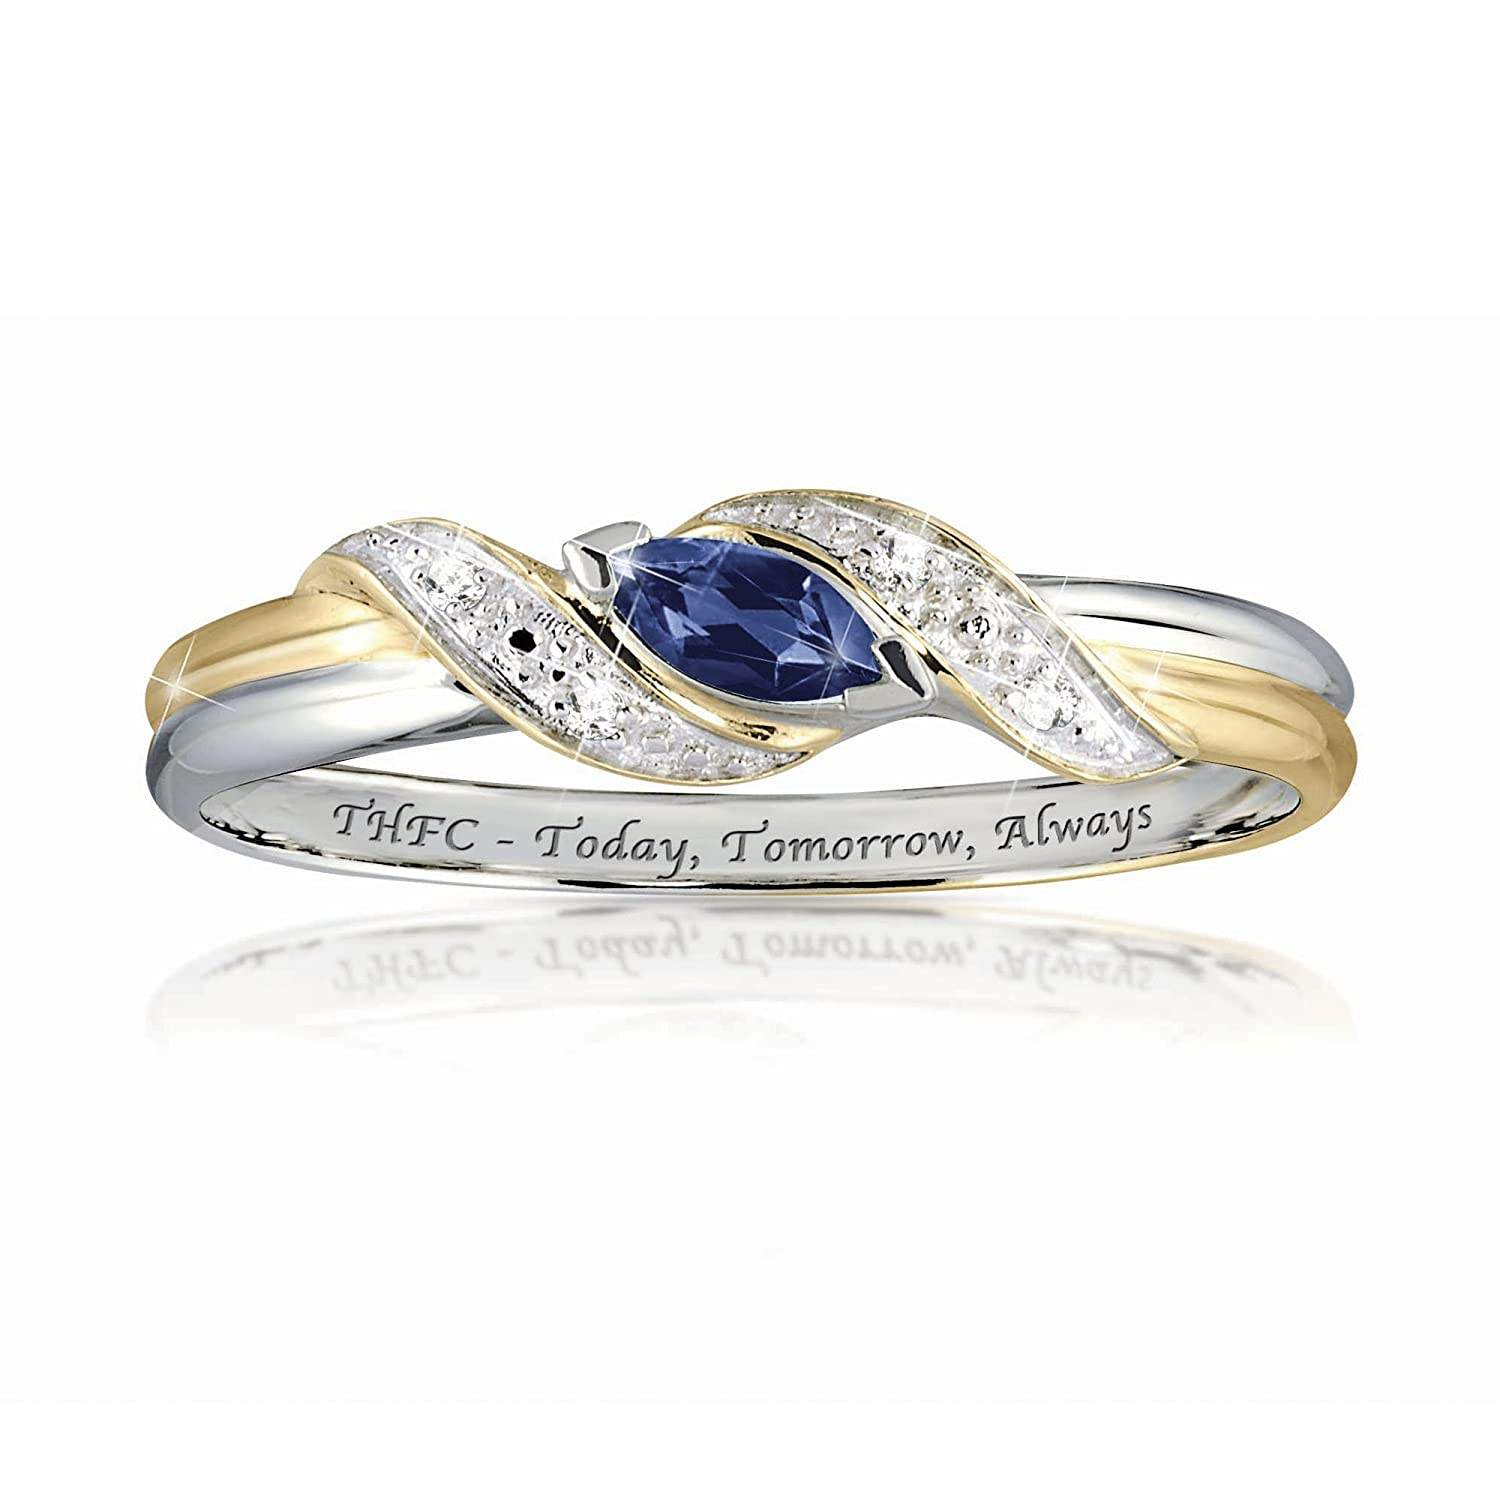 8a1a709a4c97e3 Tottenham Hotspur' Ladies Sapphire Ring By The Bradford Exchange:  Amazon.co.uk: Jewellery